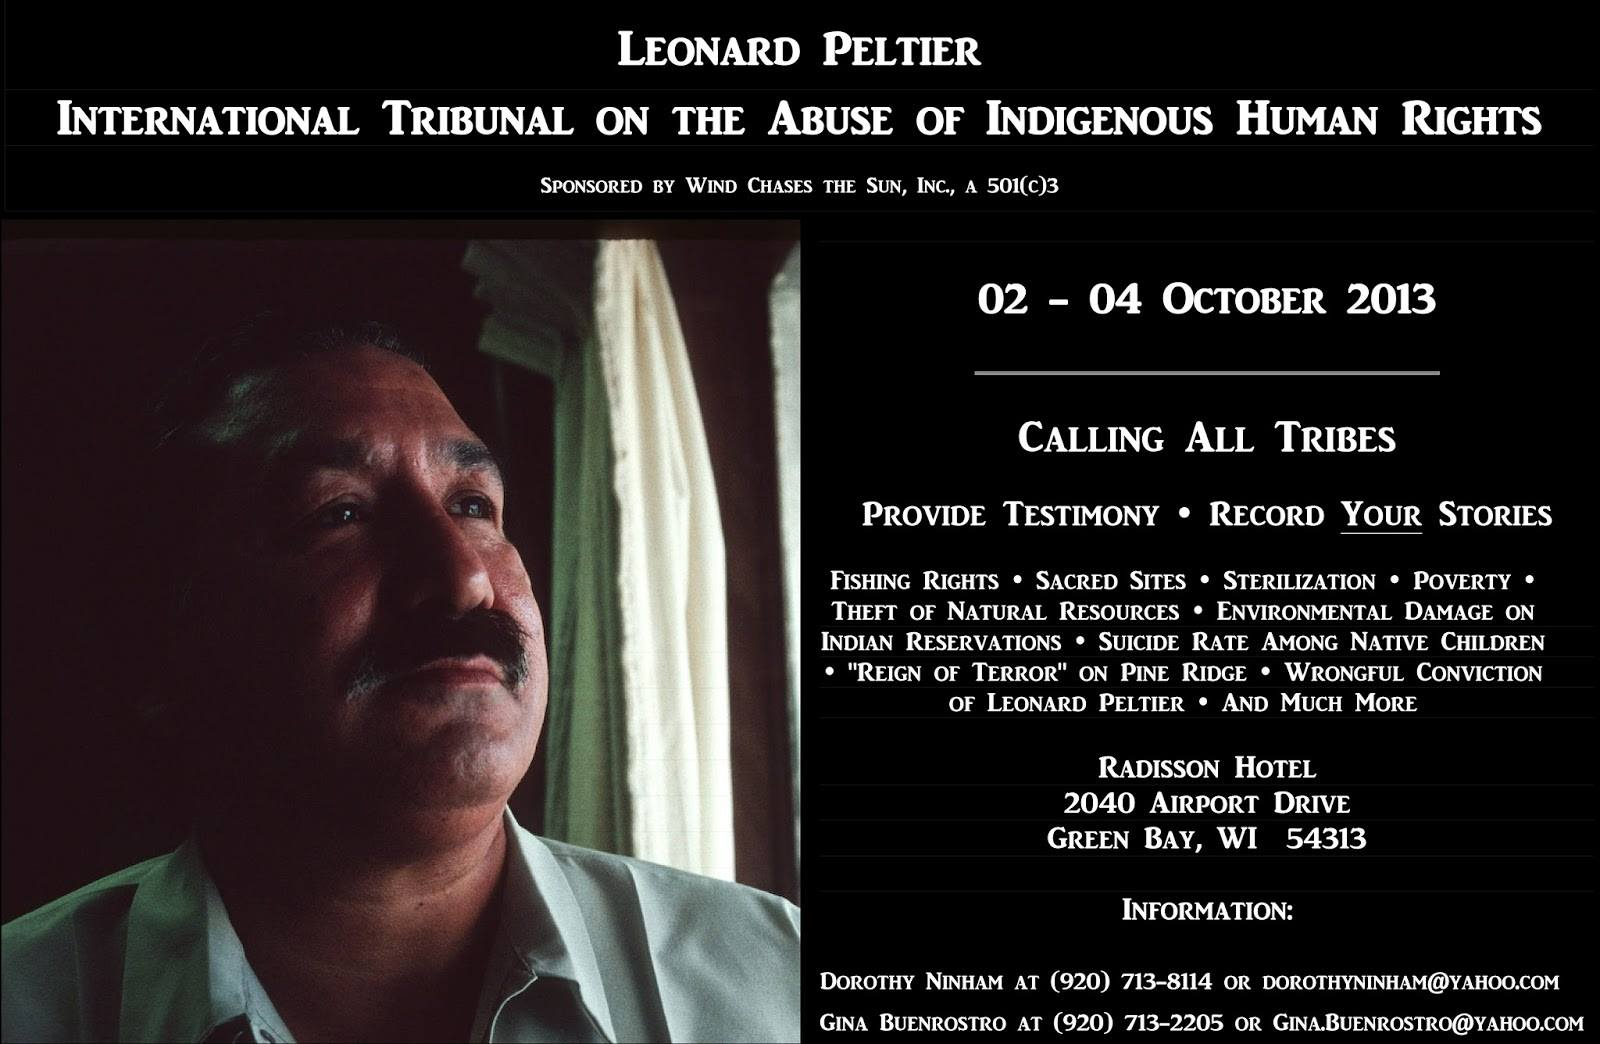 International Tribunal on the Abuse of Indigenous Human Rights